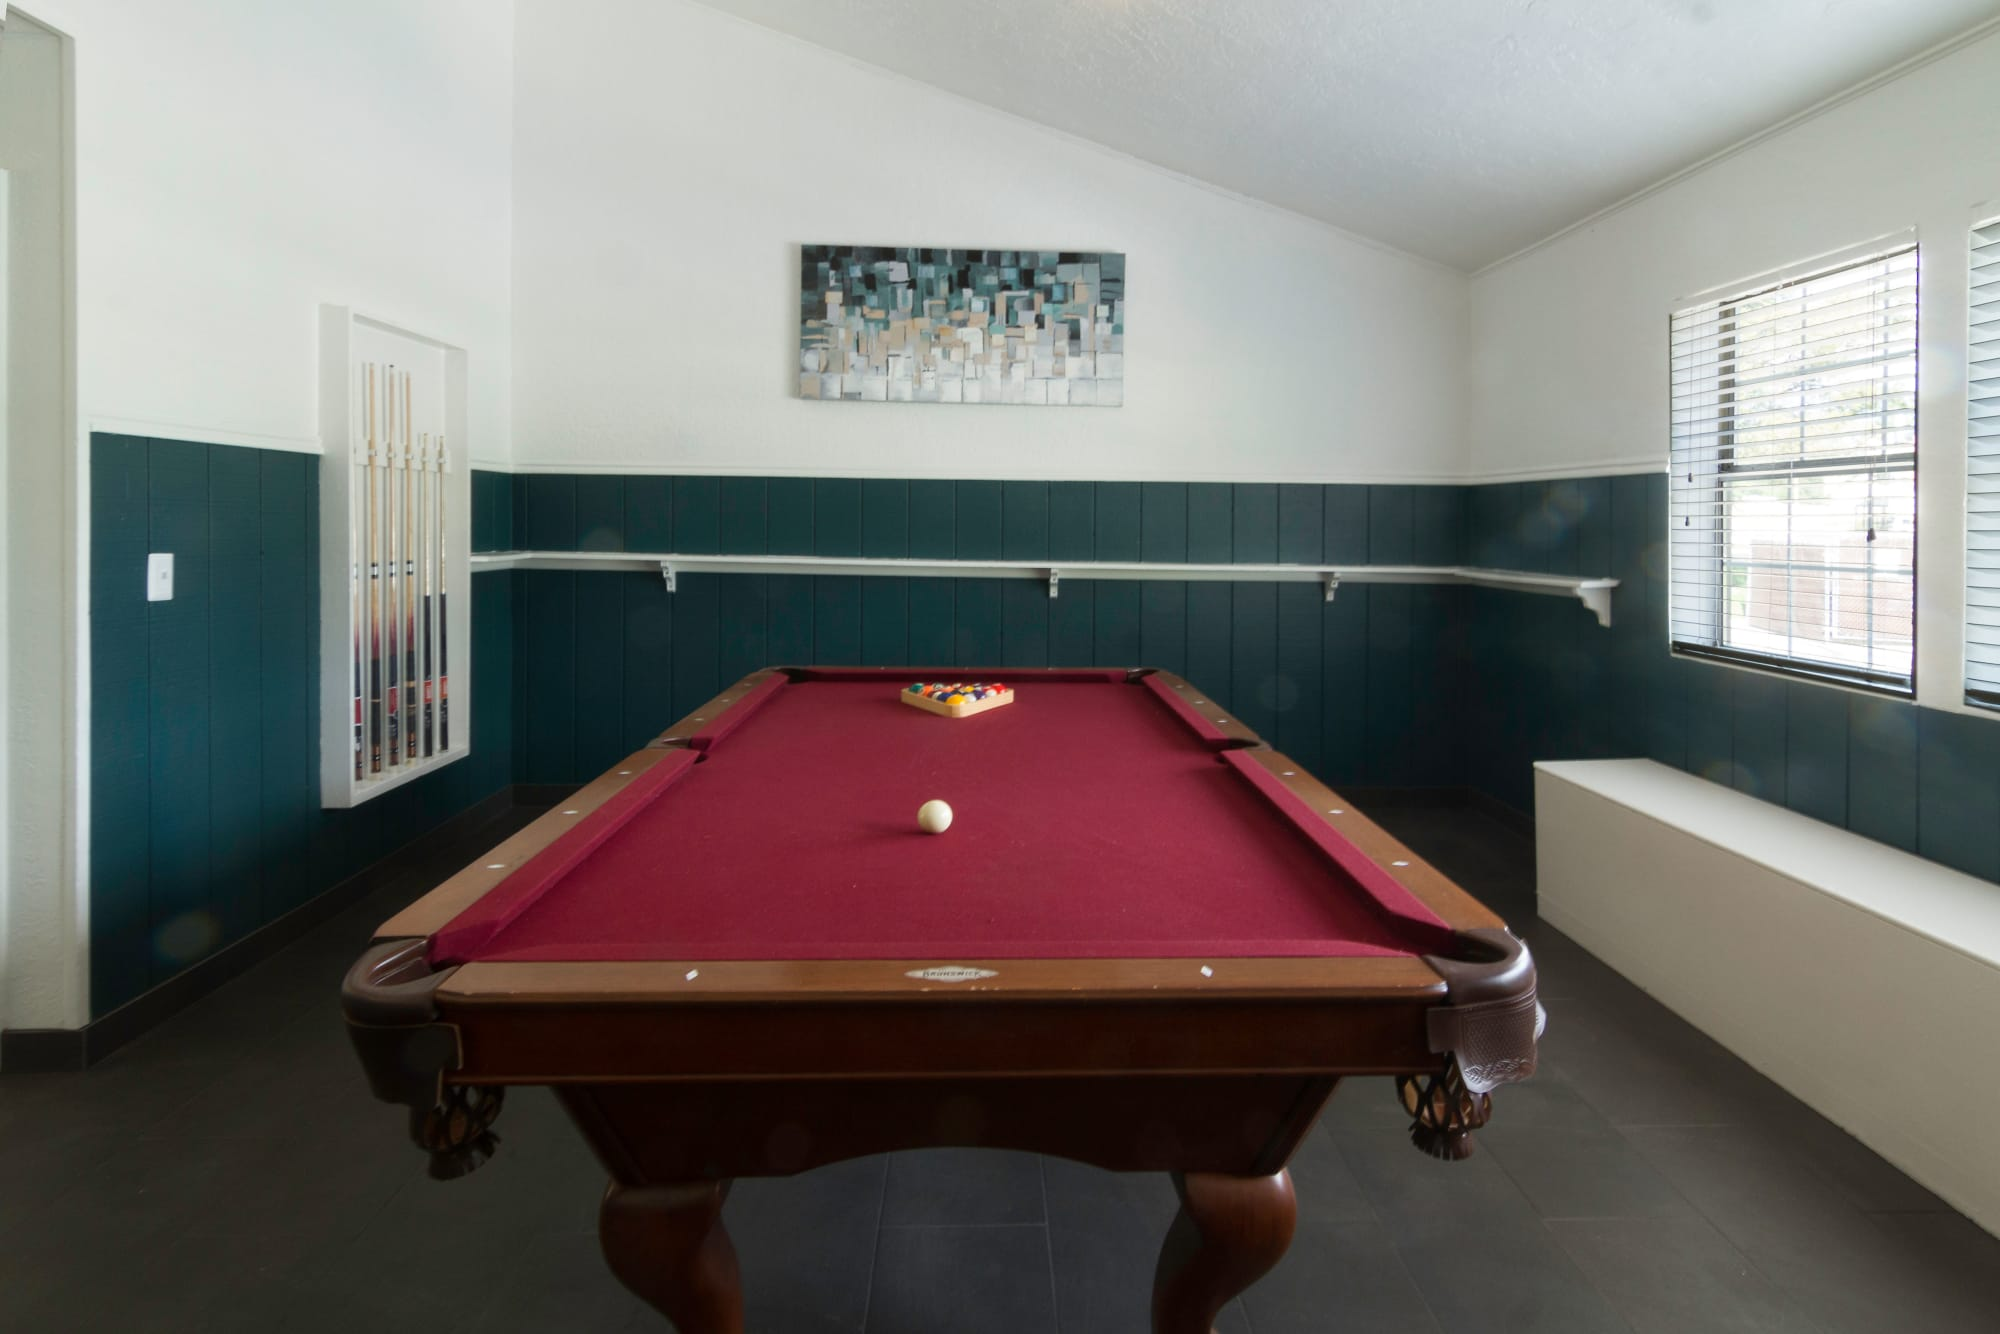 A pool table in the community center at Callaway Apartments in Taylorsville, Utah